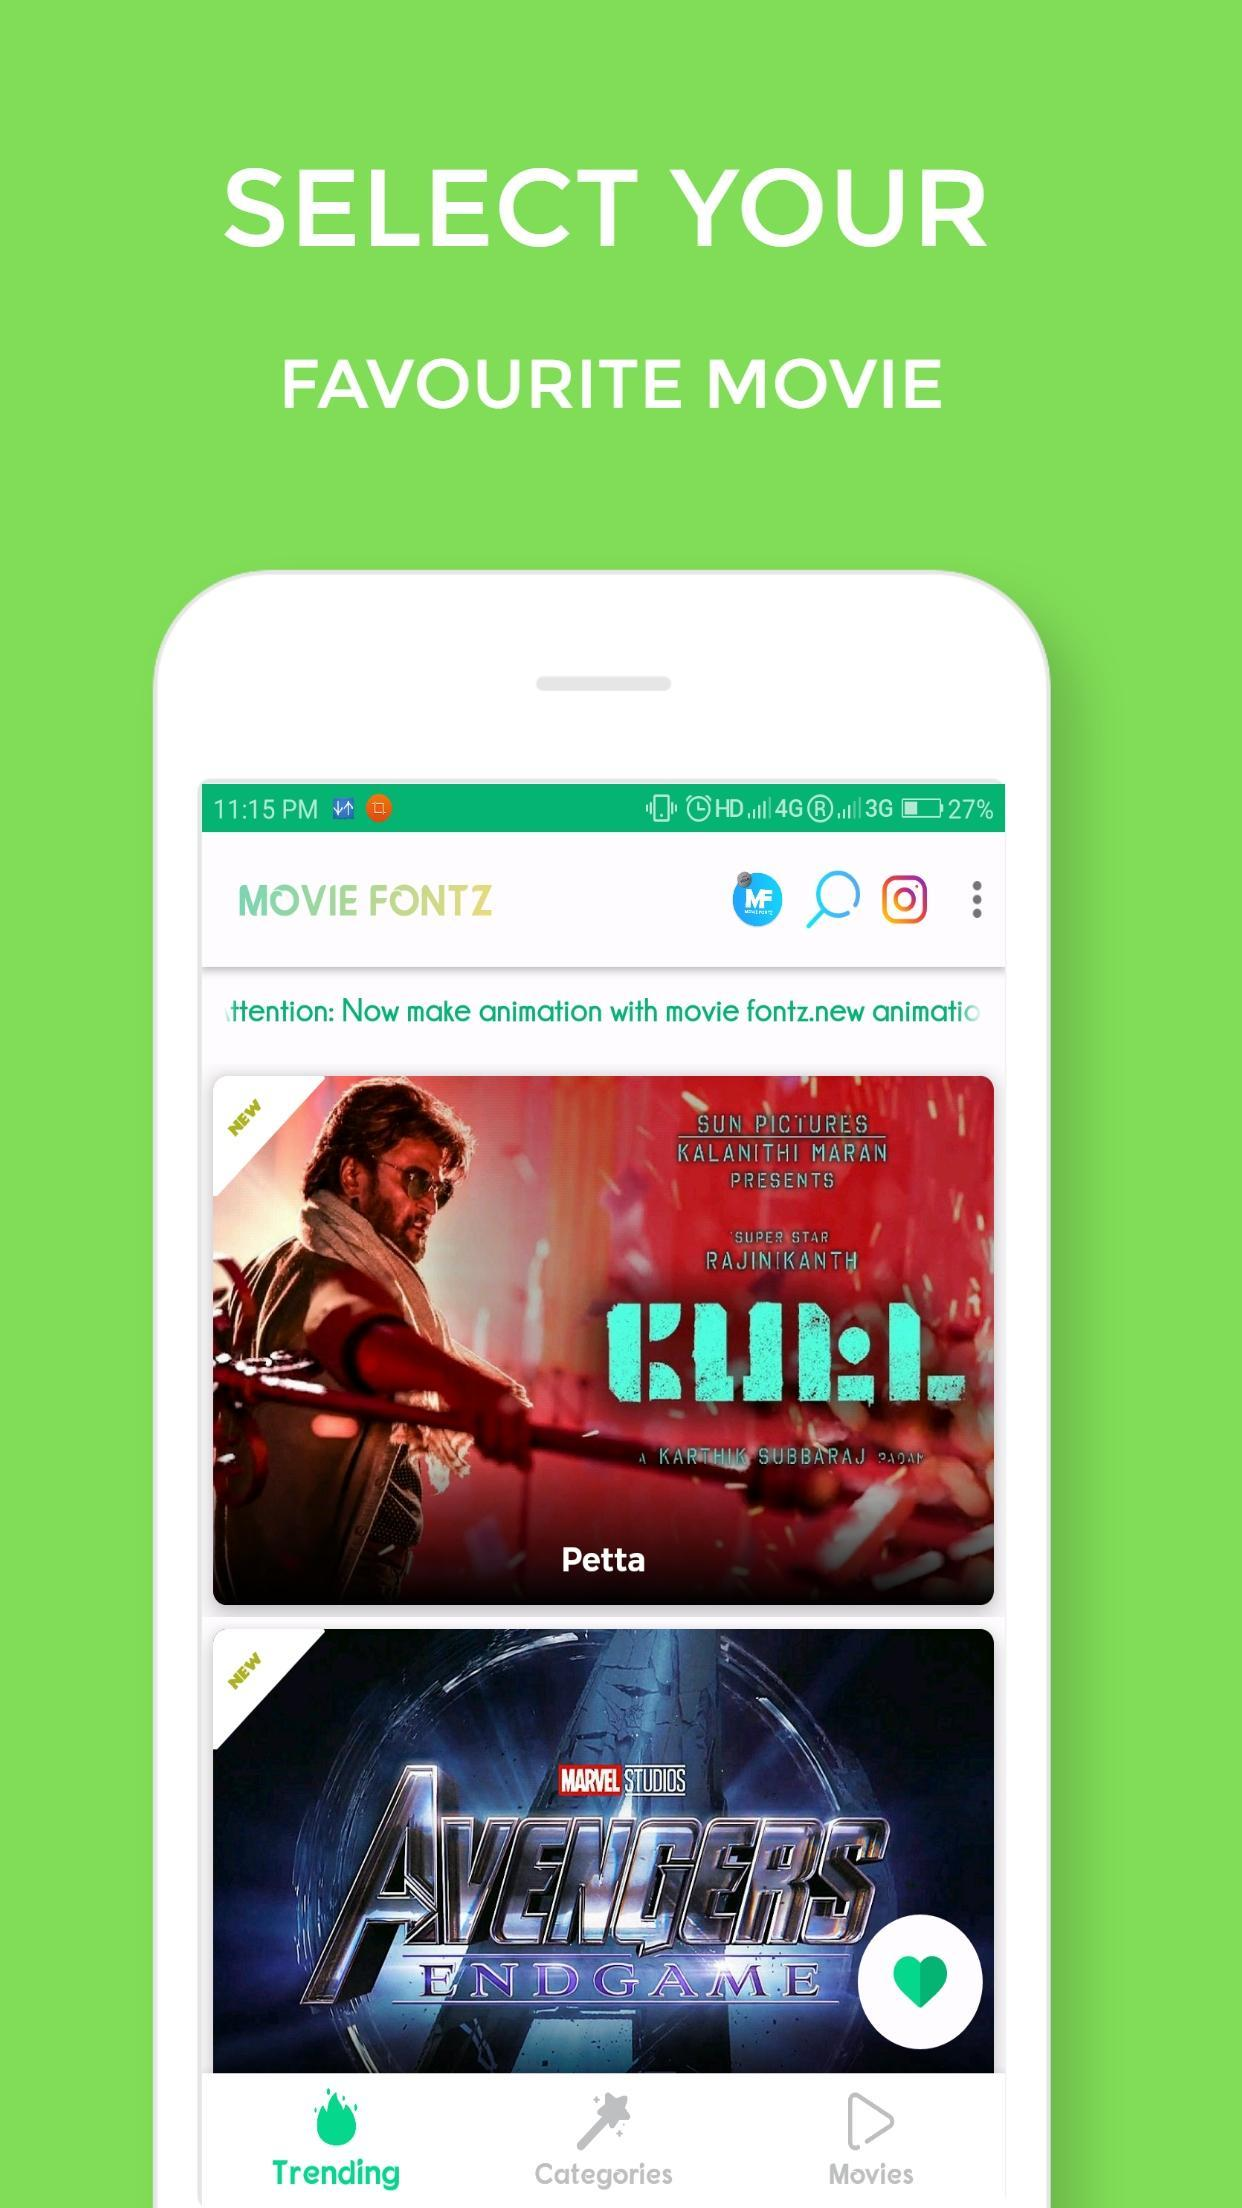 Movie Fonts(Movie Fontz) -Get all movie fonts for Android